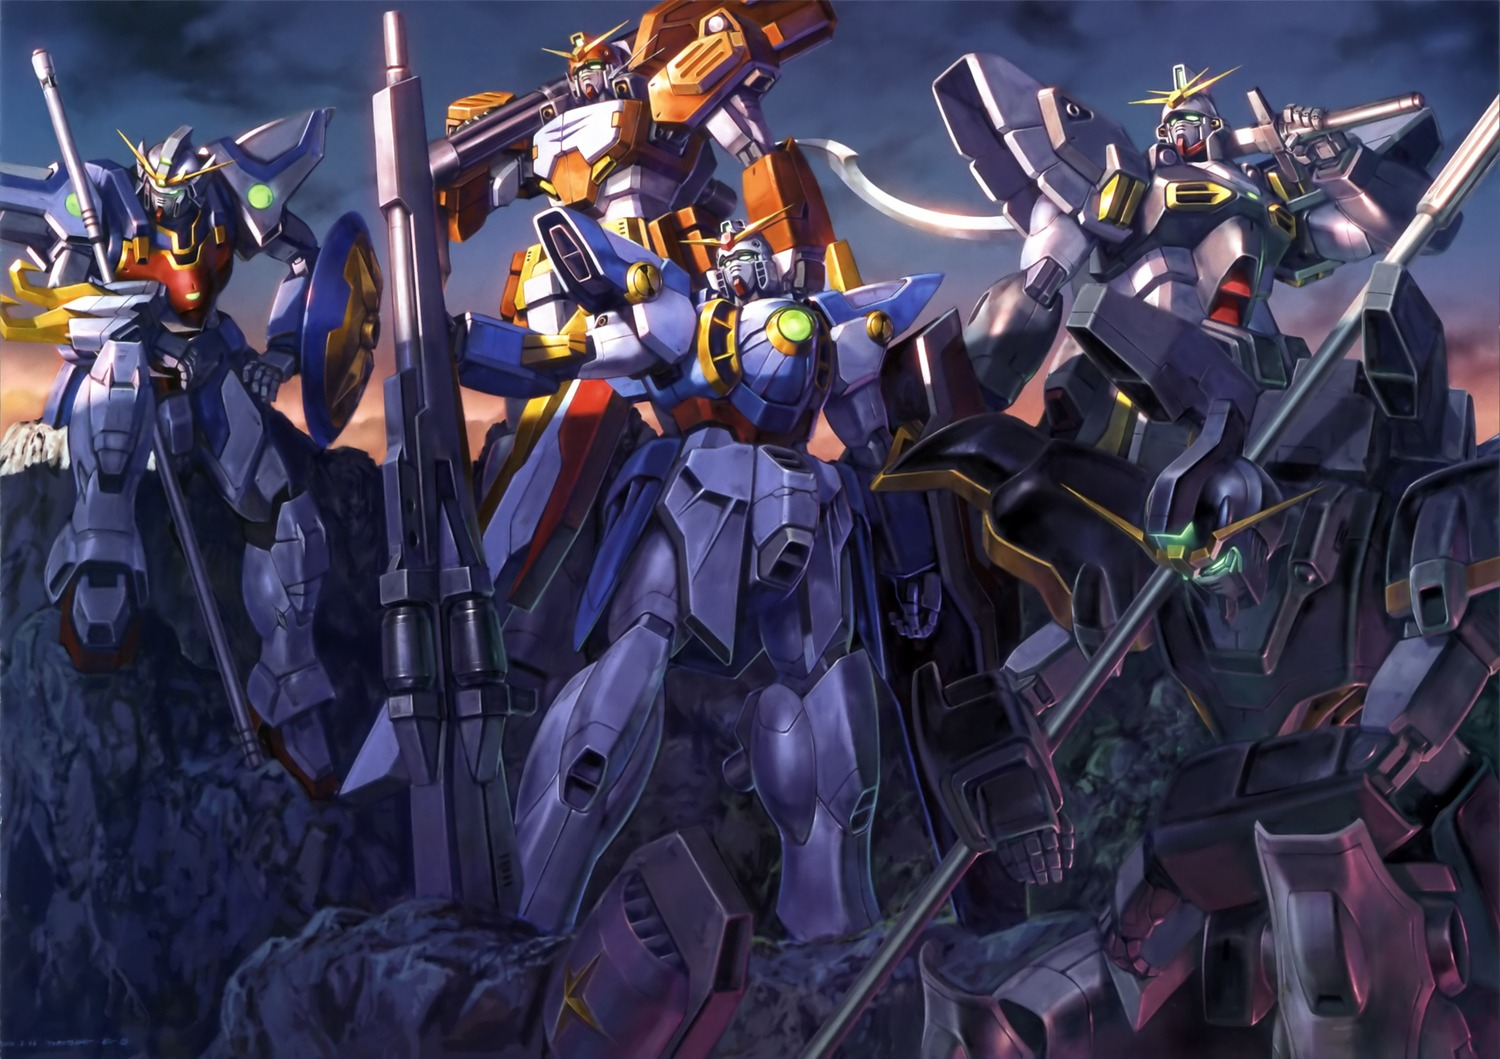 Gundam Deathscythe Wallpapers For Android at Movies Monodomo 1500x1059